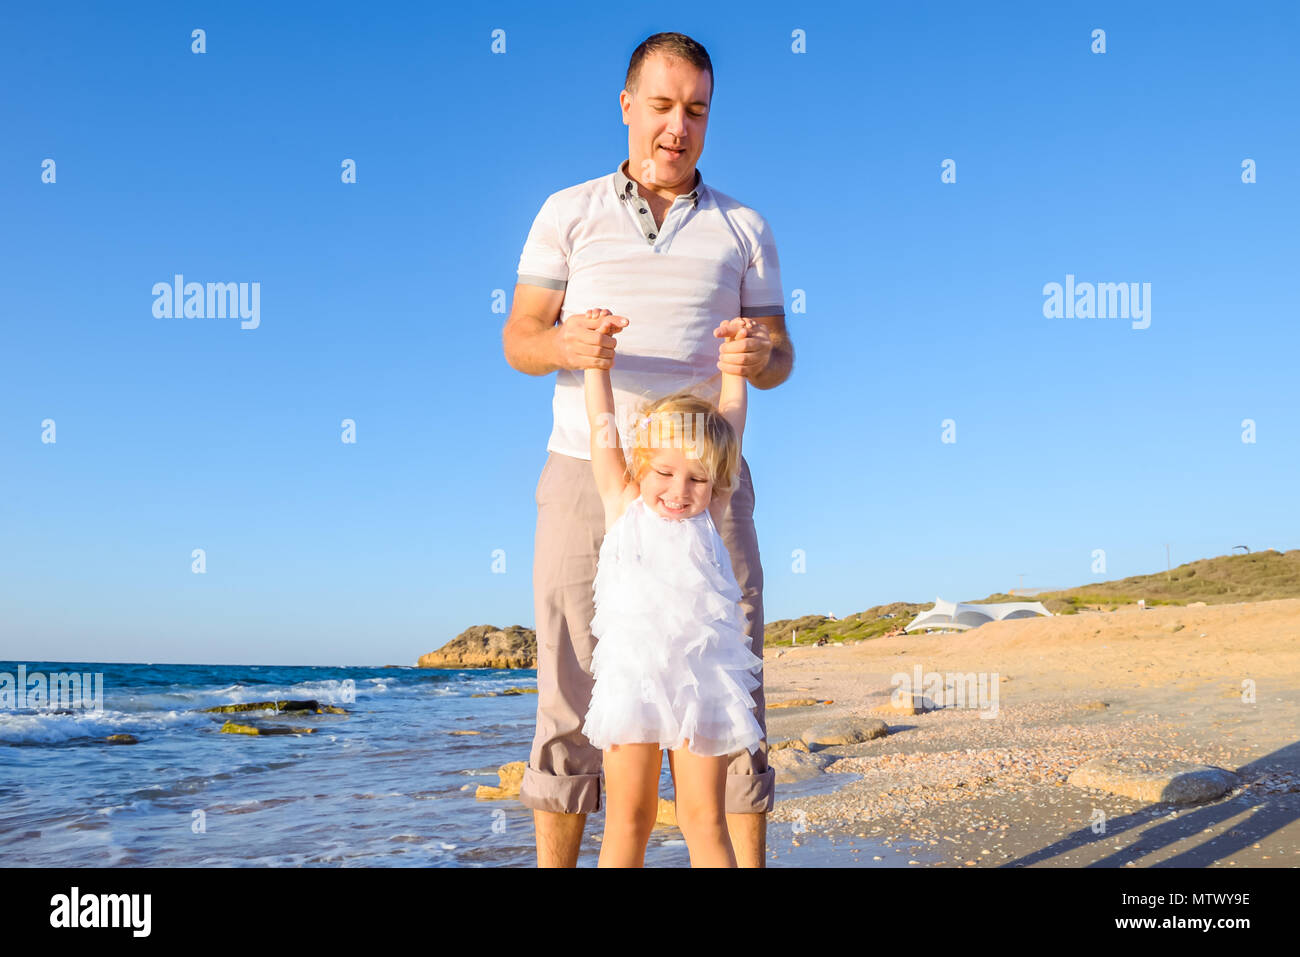 Happy blondy child girl with her father holding hands and having fun walking on the beach. Family vacation, travel concept. Bright sunlight. Copy spac - Stock Image